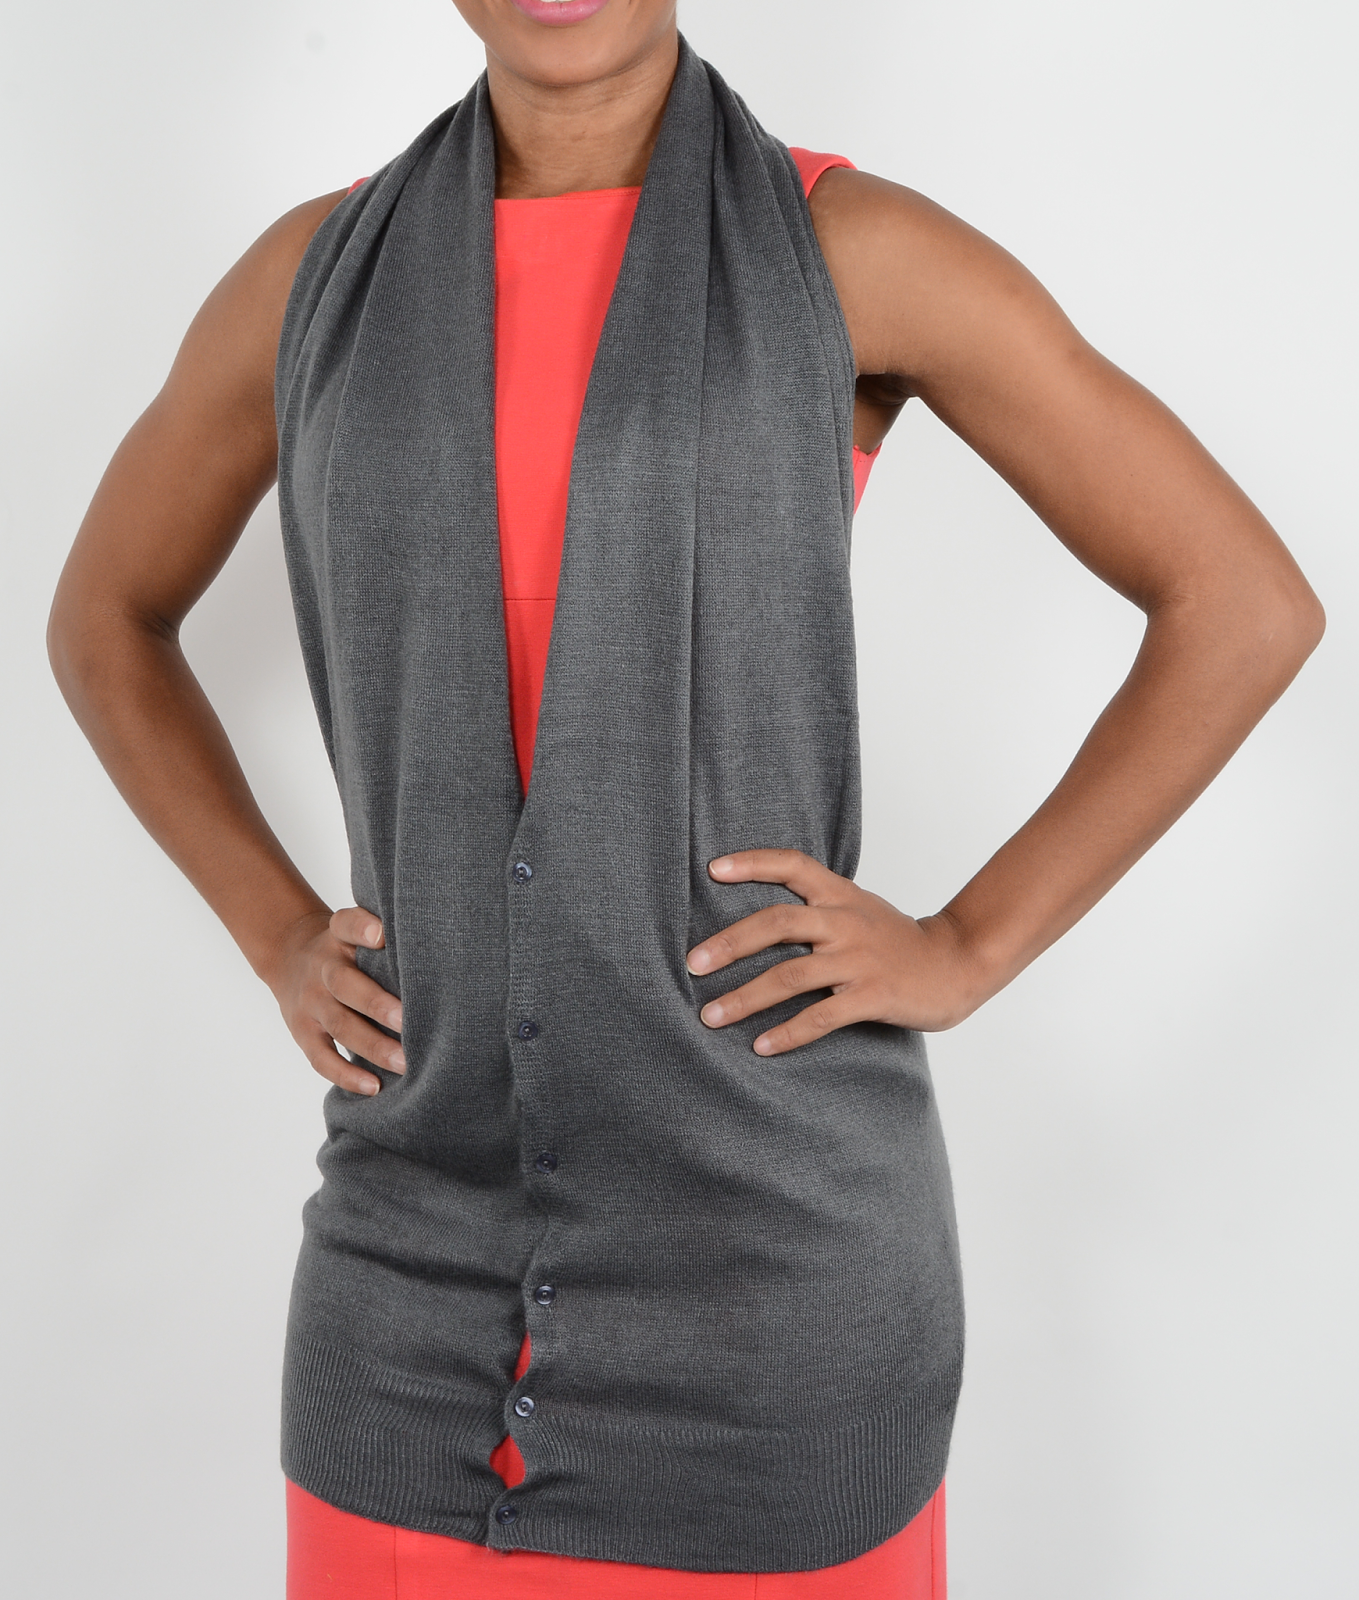 Gray color button scarf in halter neck style.